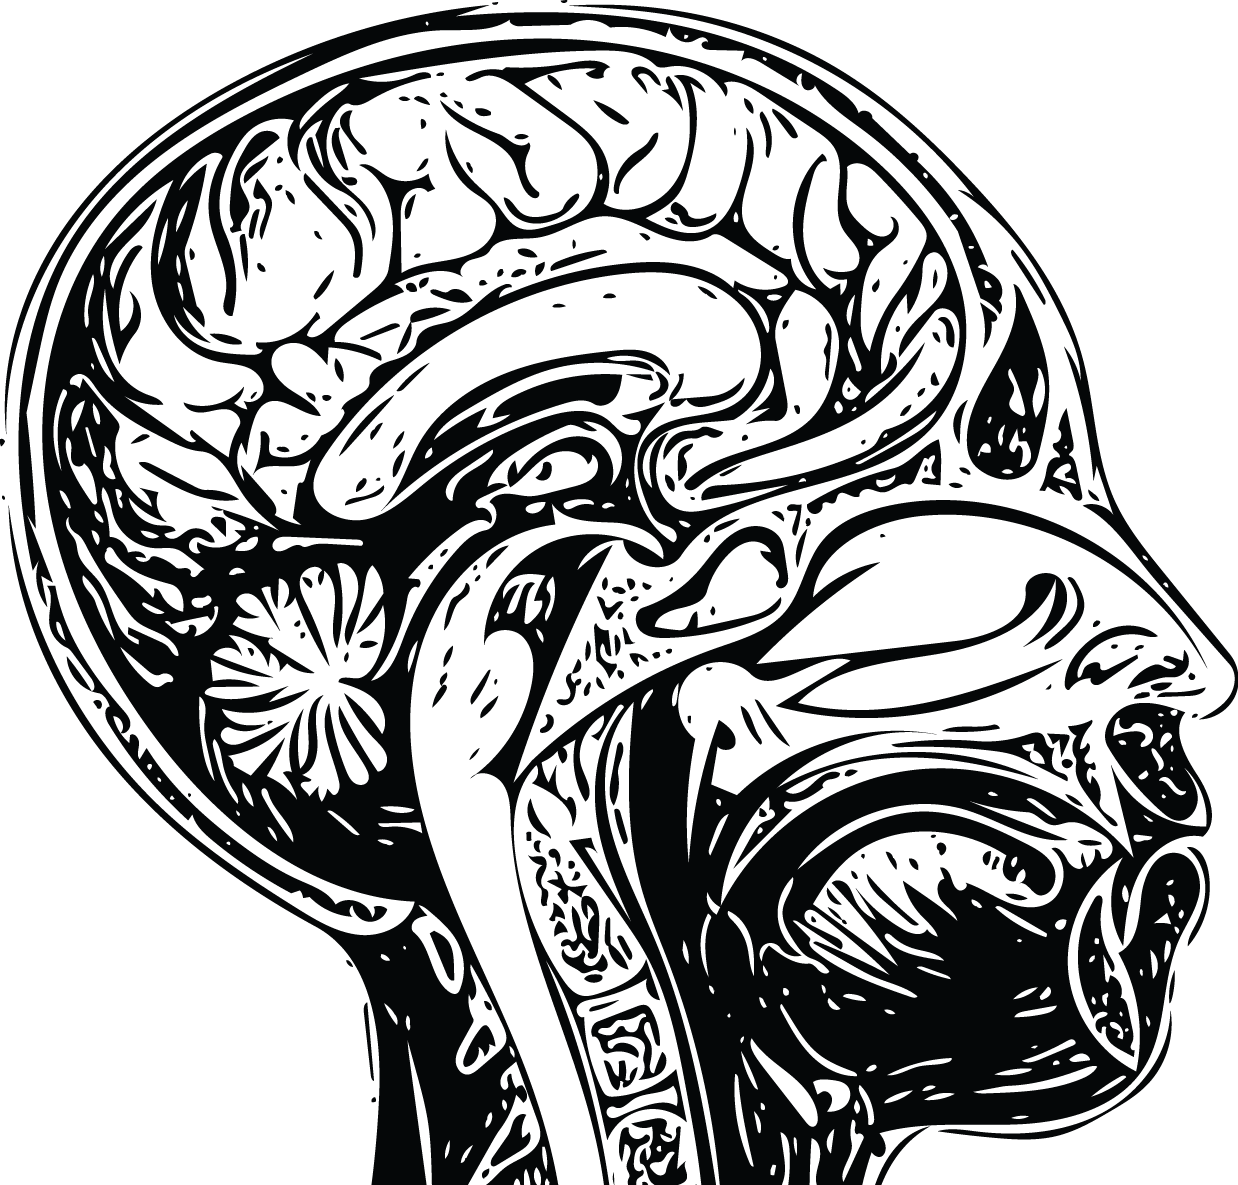 Drawn brain open minded #7